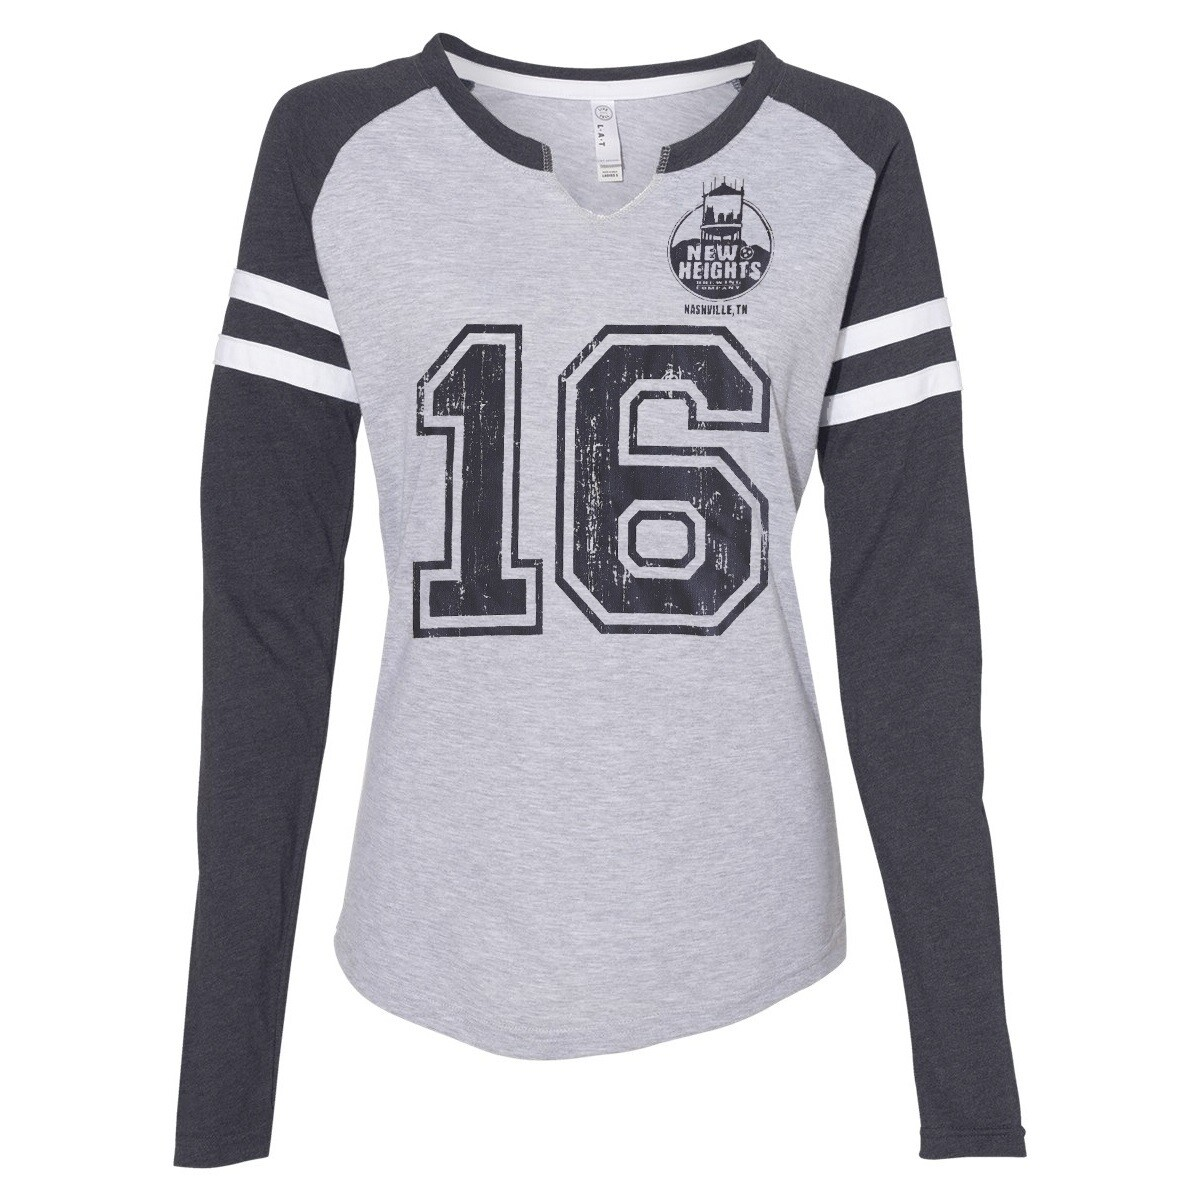 Ladies Vintage Game Day Jerzee- Long Sleeve Heather Grey/Heather Navy - #16 for the year we launched (2016)